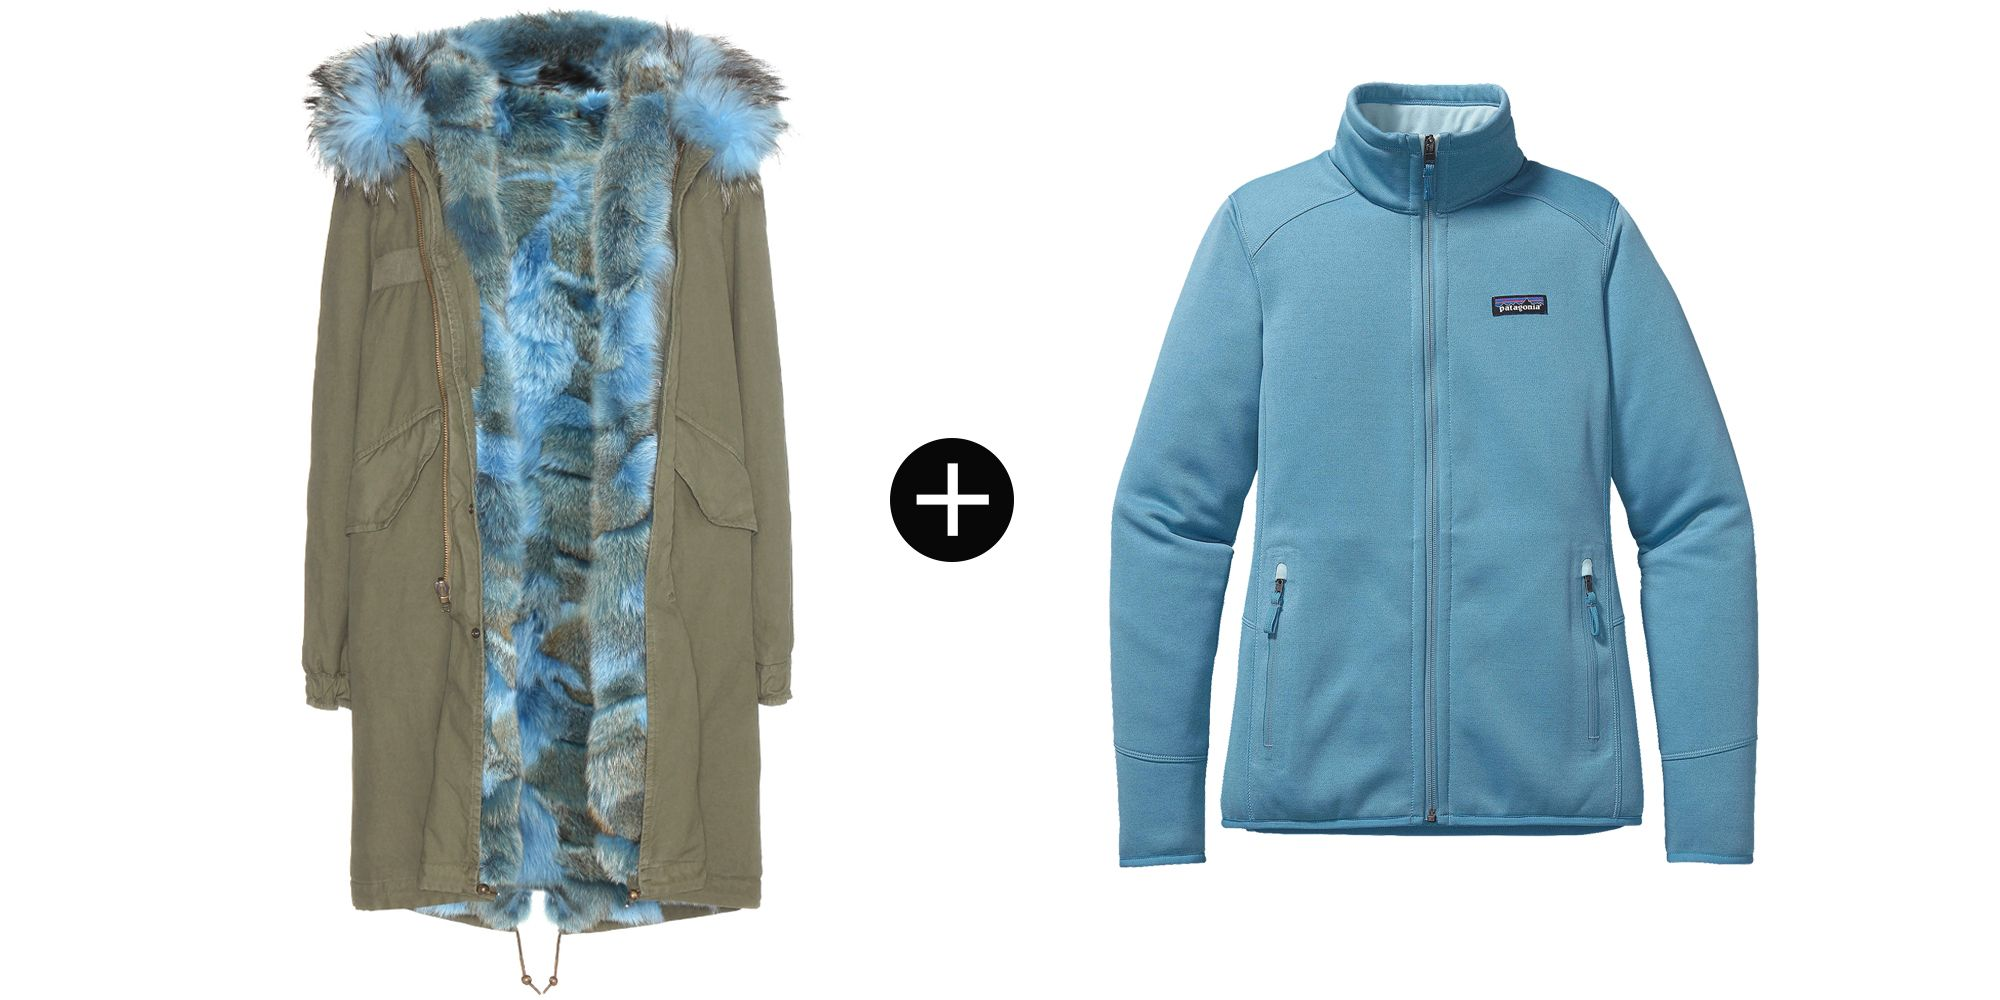 "<p>Mr & Mrs Italy Fur-Lined Parka with Fur-Trimmed Hood, $6,800; <a href=""http://www.mytheresa.com/en-us/fur-lined-parka-with-fur-trimmed-hood-387322.html?catref=category"" target=""_blank"">mytheresa.com</a></p><p>Patagonia Women's Tech Fleece Jacket, $129; <a href=""http://www.patagonia.com/us/product/womens-tech-fleece-jacket?p=25935-0-CTYB"" target=""_blank"">patagonia.com</a></p>"